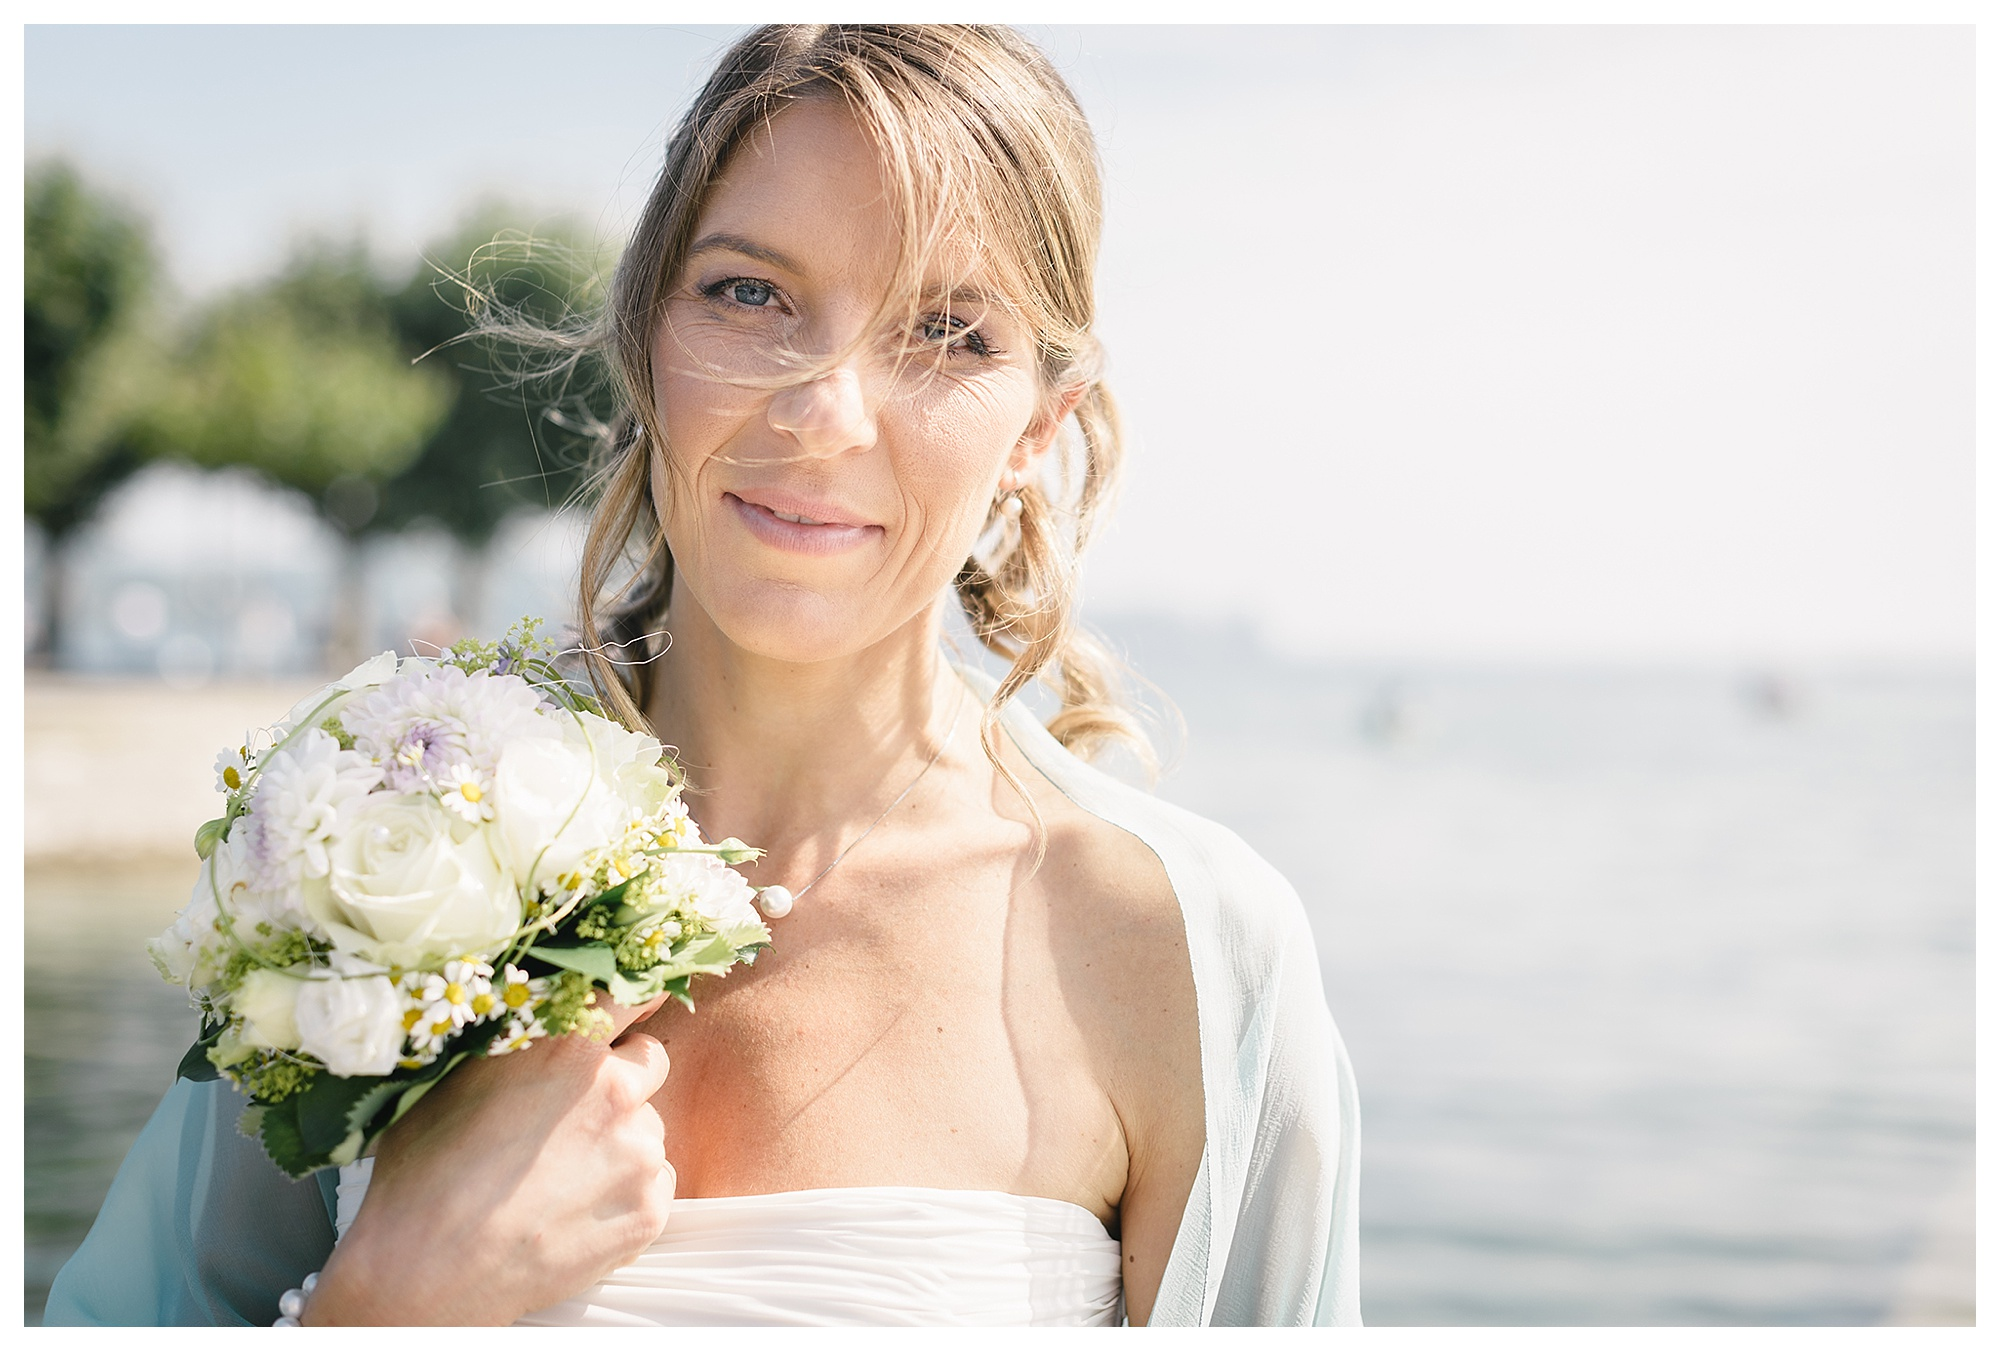 Fotograf Konstanz - Hochzeitsreportage Konstanz Raphael Nicole Elmar Feuerbacher Photography Hochzeit Portrait 24 - Wedding in Constance at Lake of Constance  - 59 -